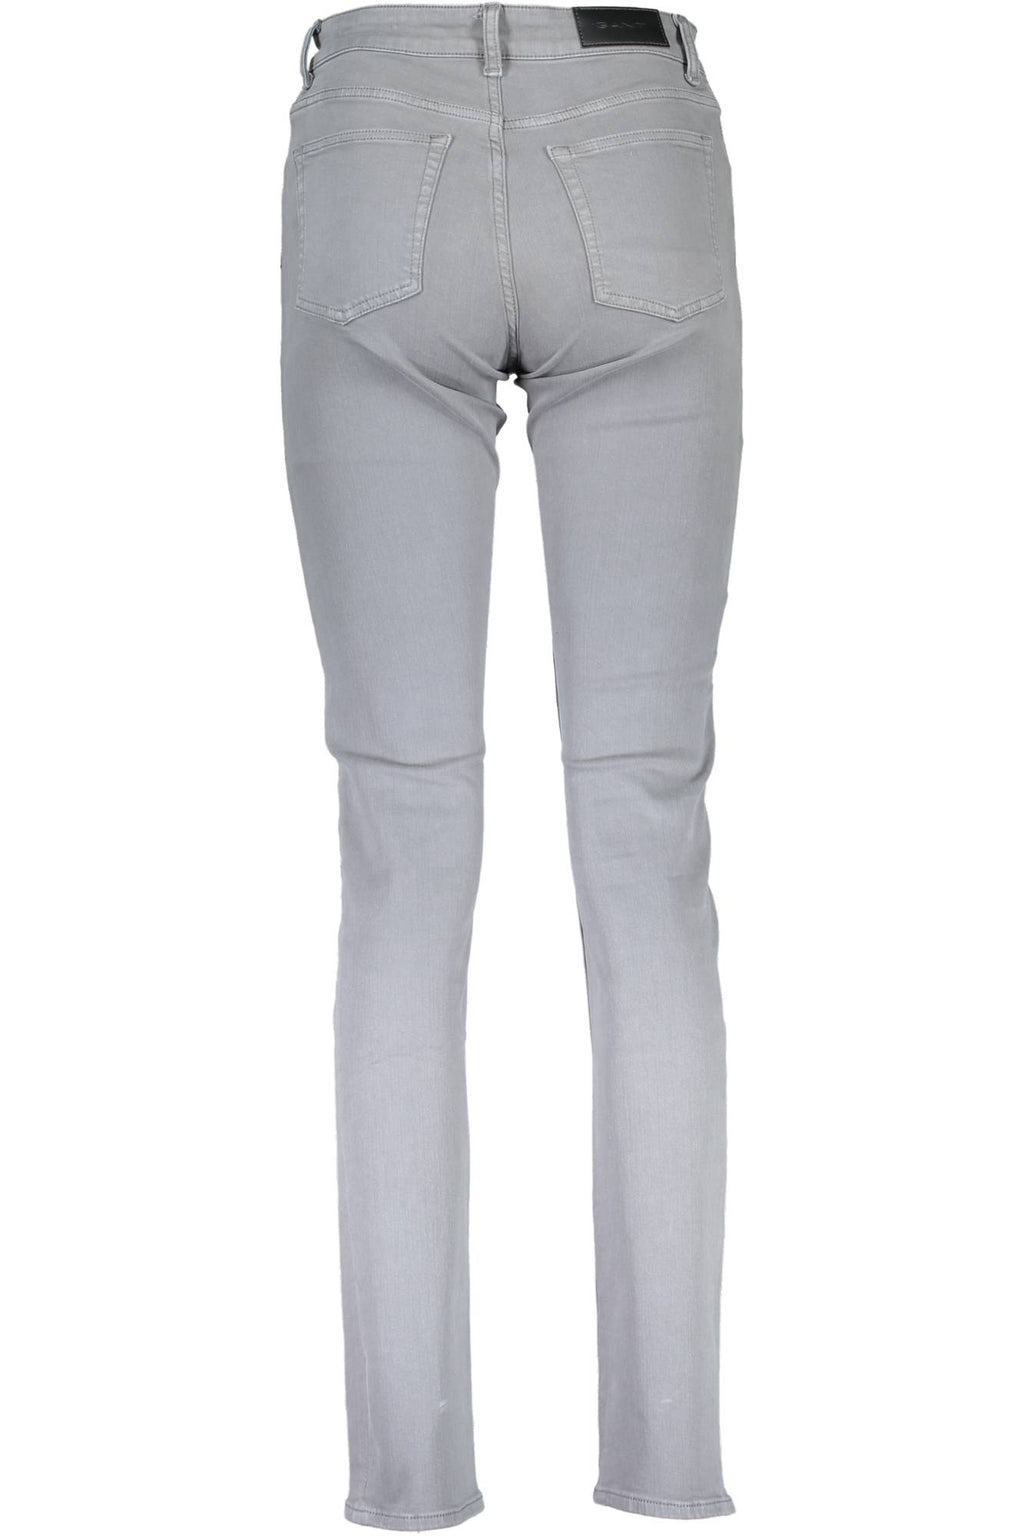 GANT Denim Jeans Damen - Grau - SF1803.4100054